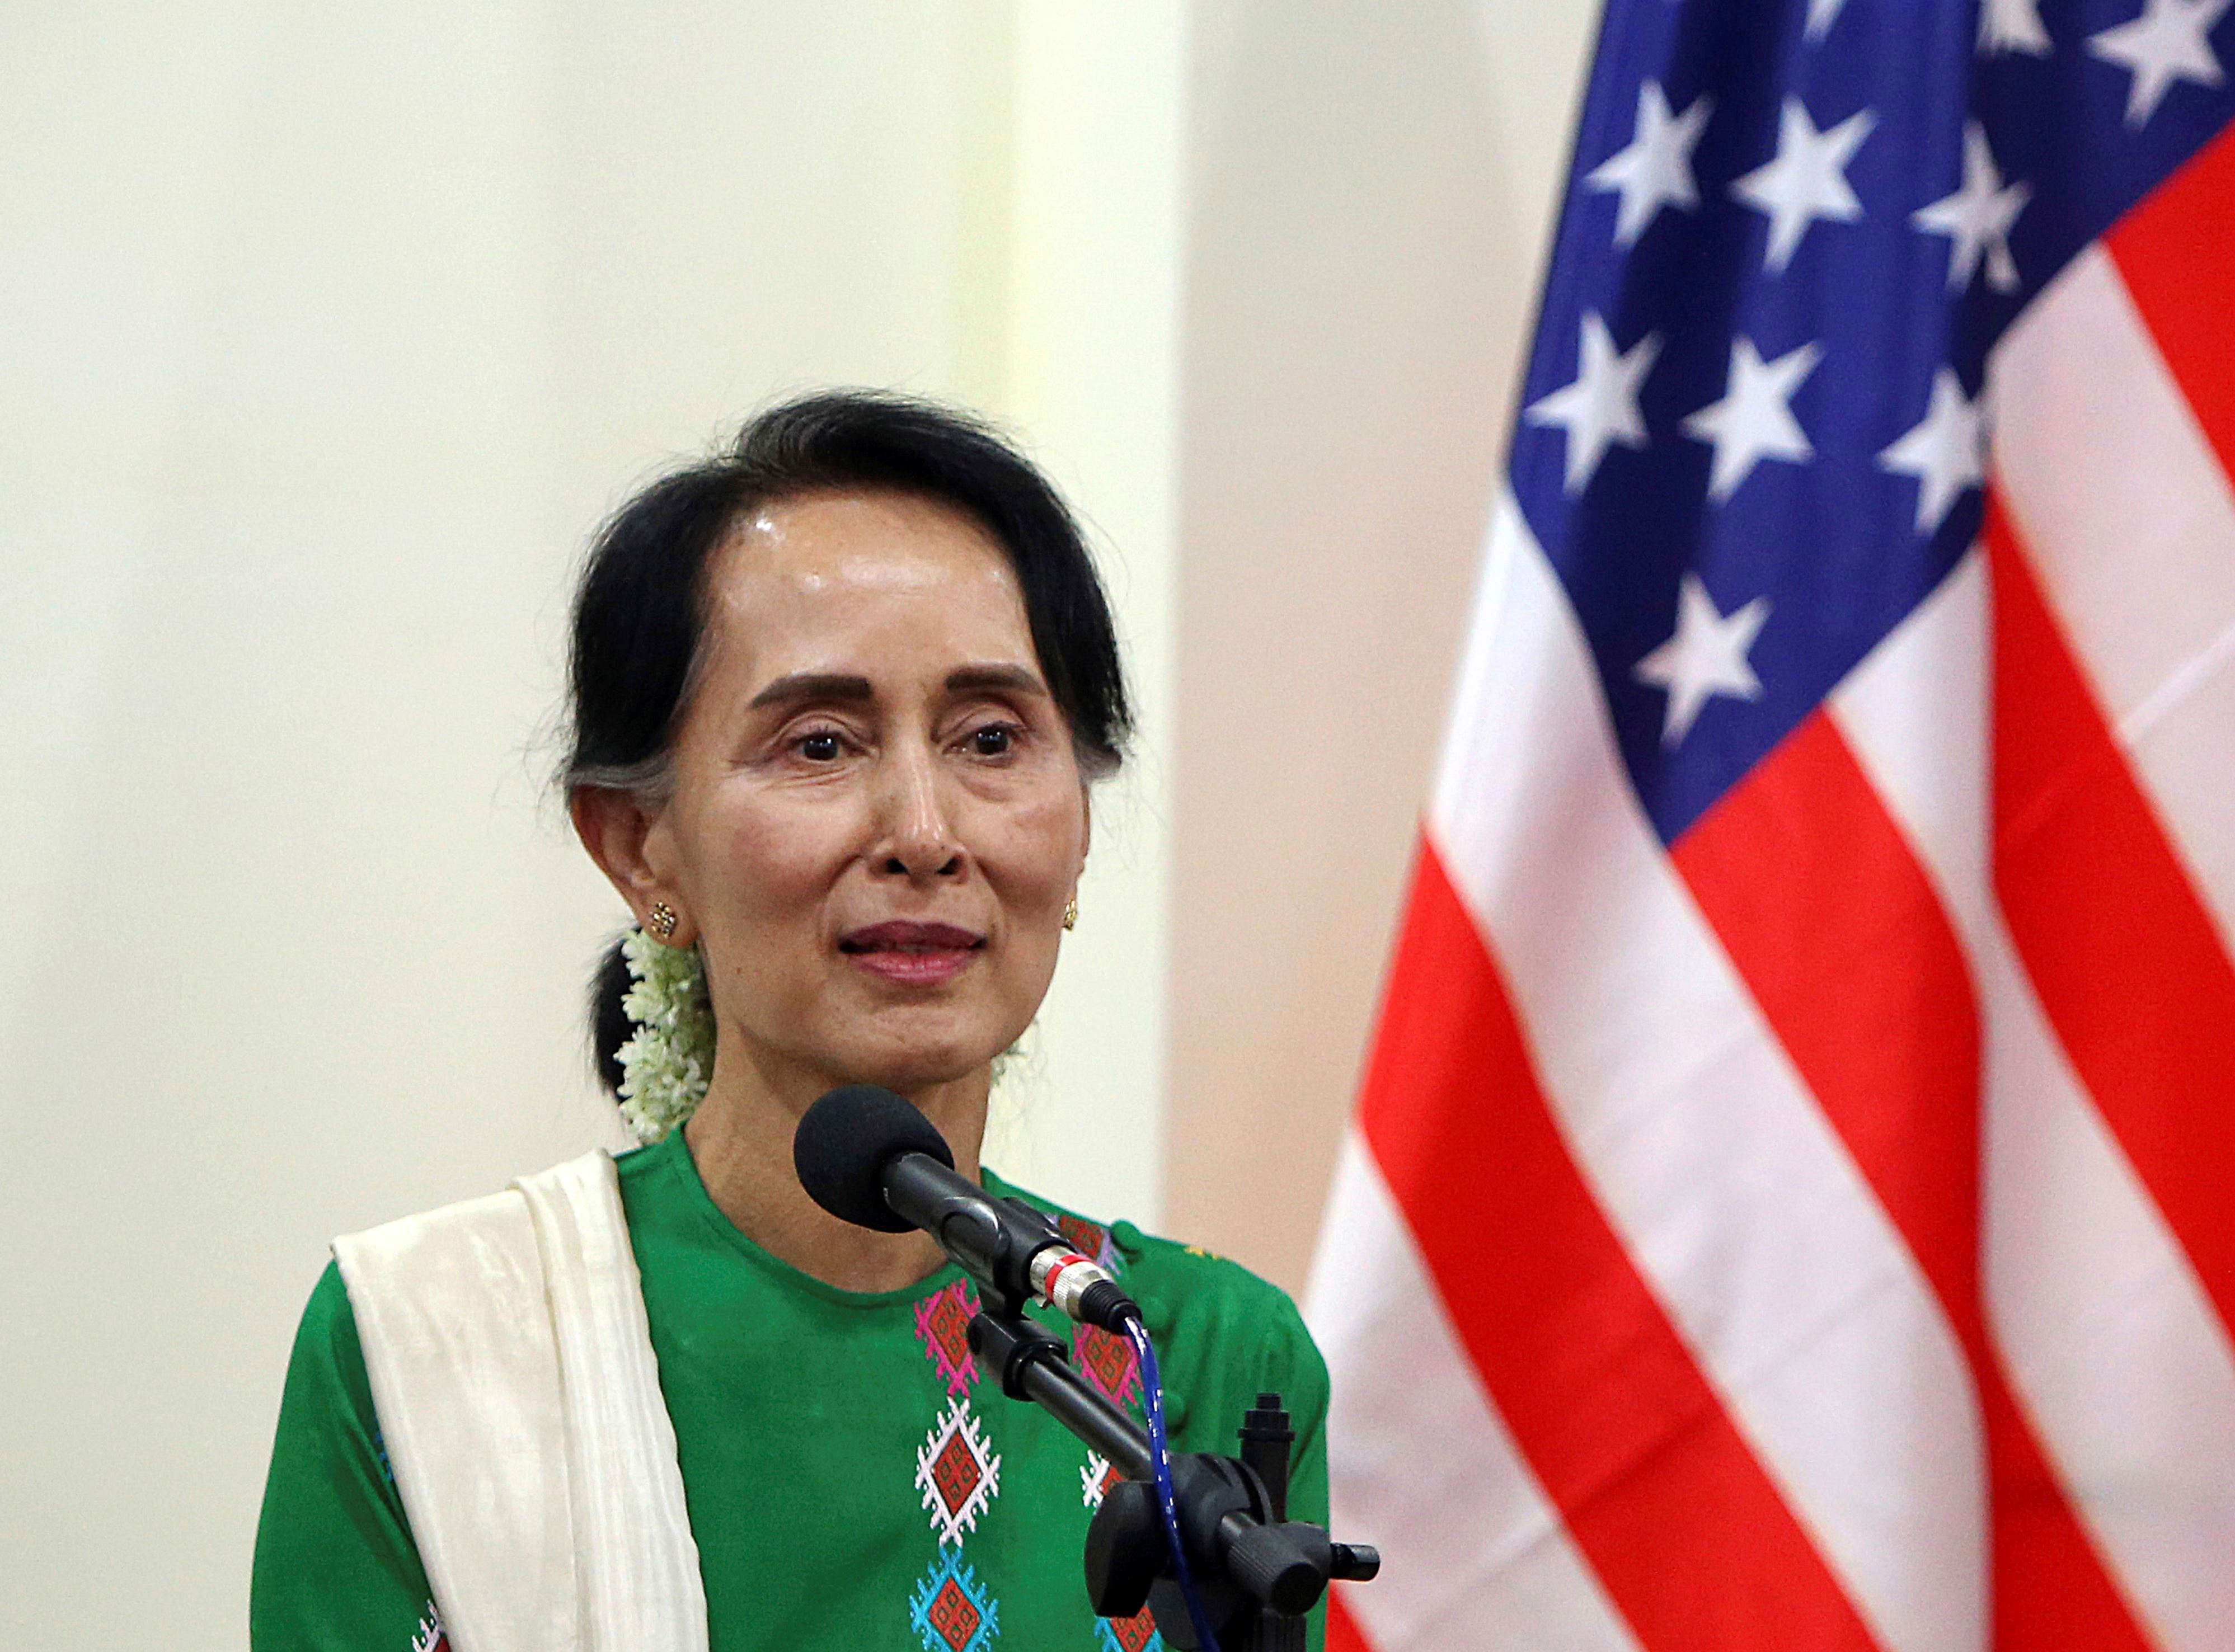 Slide 9 of 35: Myanmar leader Aung San Suu Kyi smiles during a press briefing with U.S. Secretary of State Rex Tillerson (not in photo) at the Foreign Ministry office in Naypyitaw, Myanmar, Wednesday, Nov. 15, 2017. (AP Photo/Aung Shine Oo)